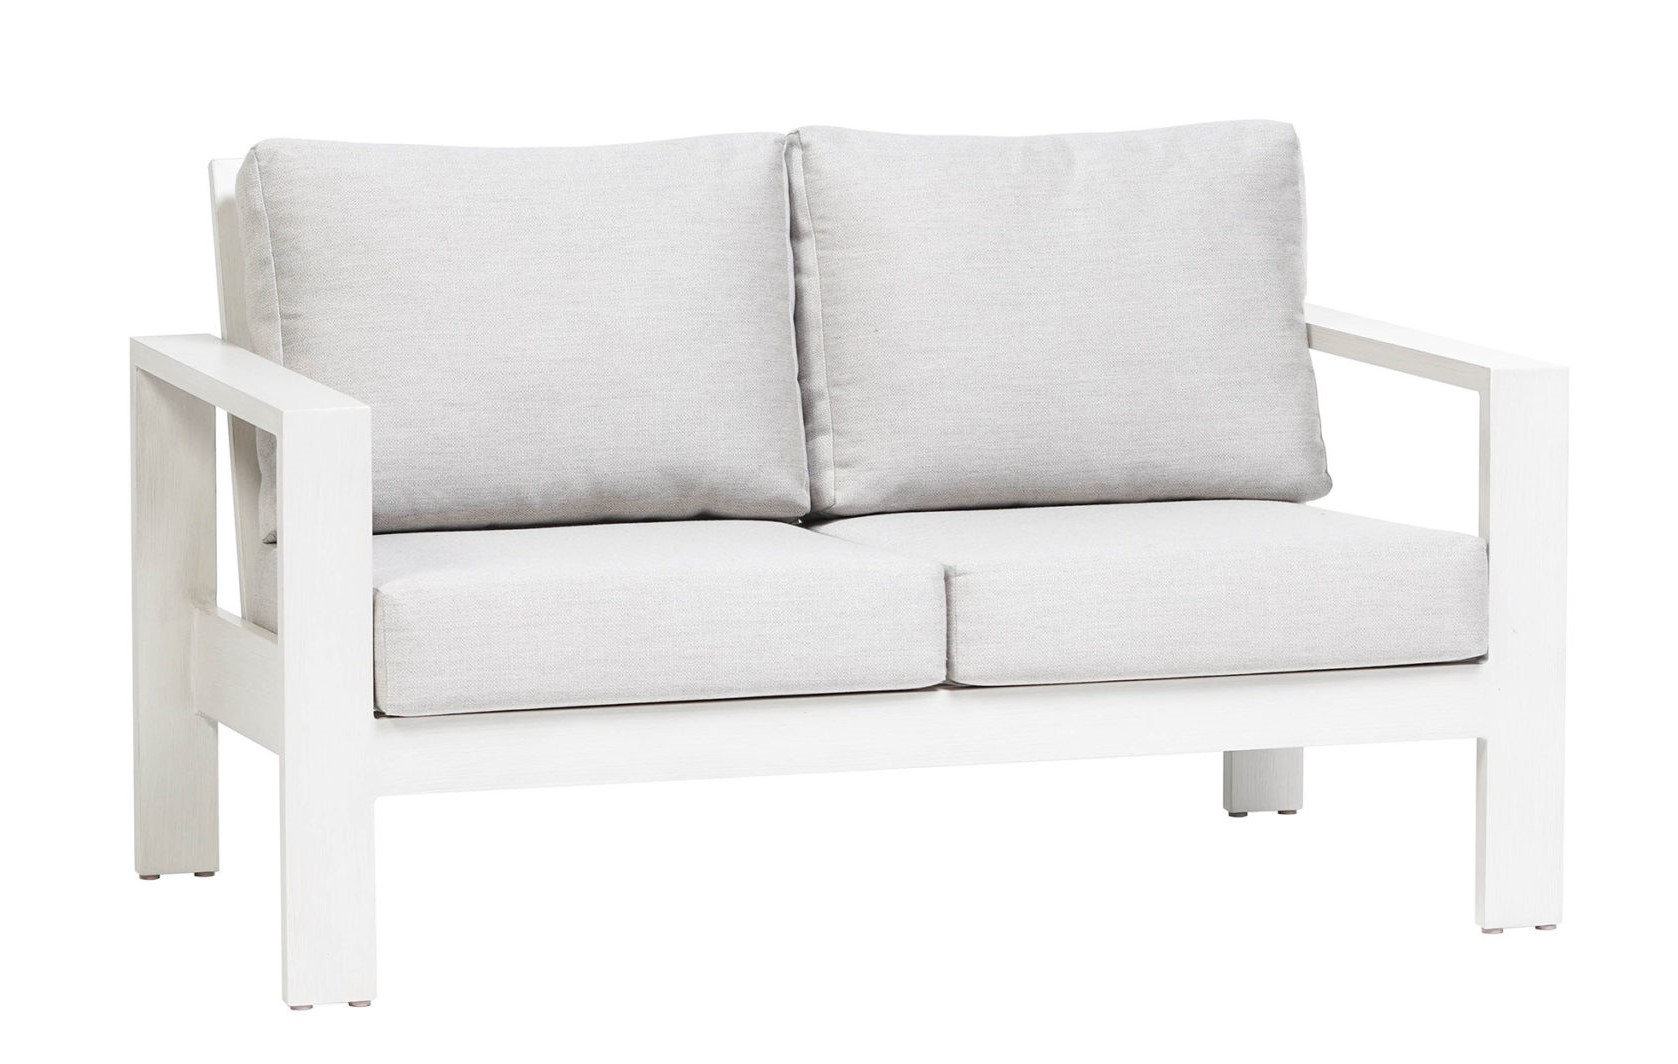 The Park Lane love seat by Ratana with white frame and light grey colored cushions.